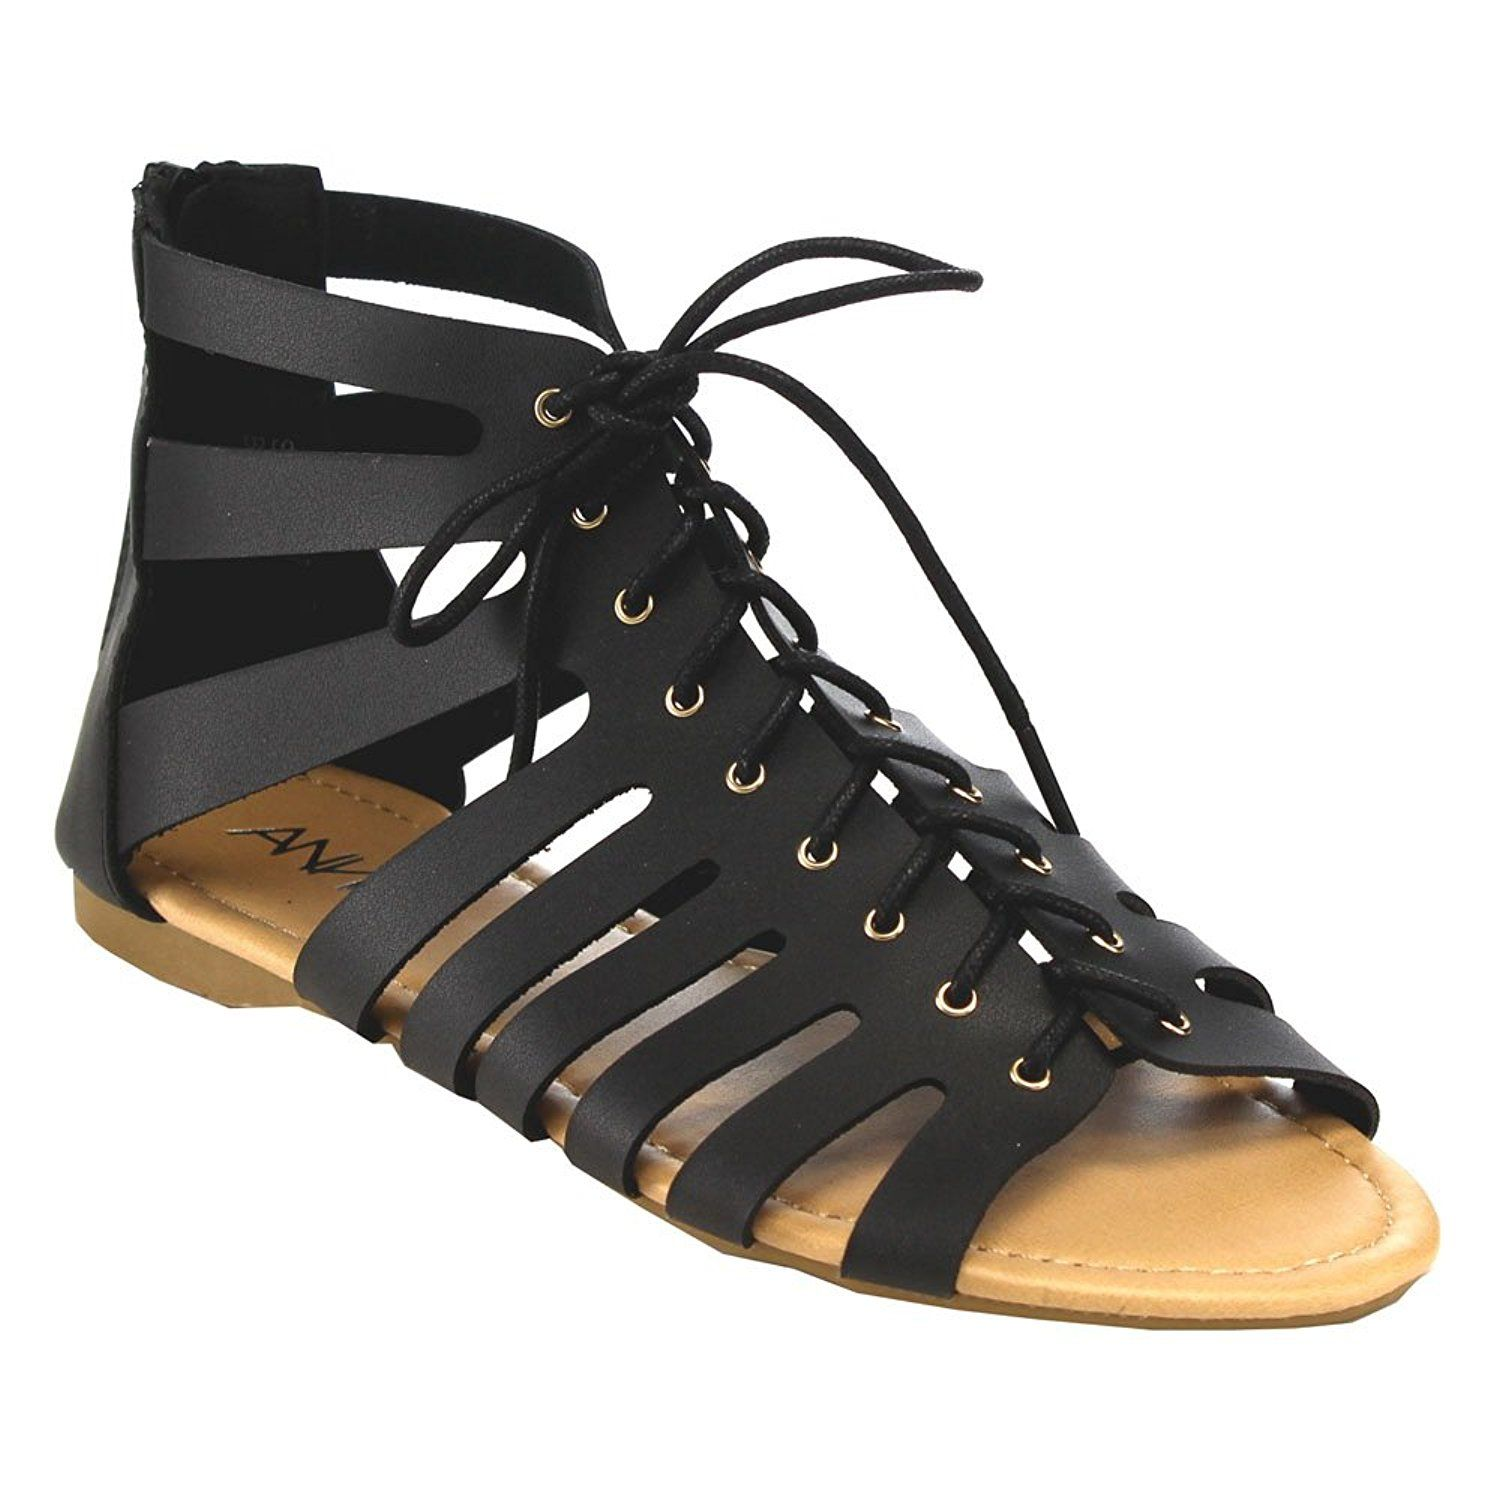 Anna Spencer 7 Women S Caged Lace Up Zipper Flat Gladiator Dress Sandals See This Great Image Lace Up Sandals Black Lace Up Flats Lace Up Gladiator Sandals [ 1500 x 1500 Pixel ]